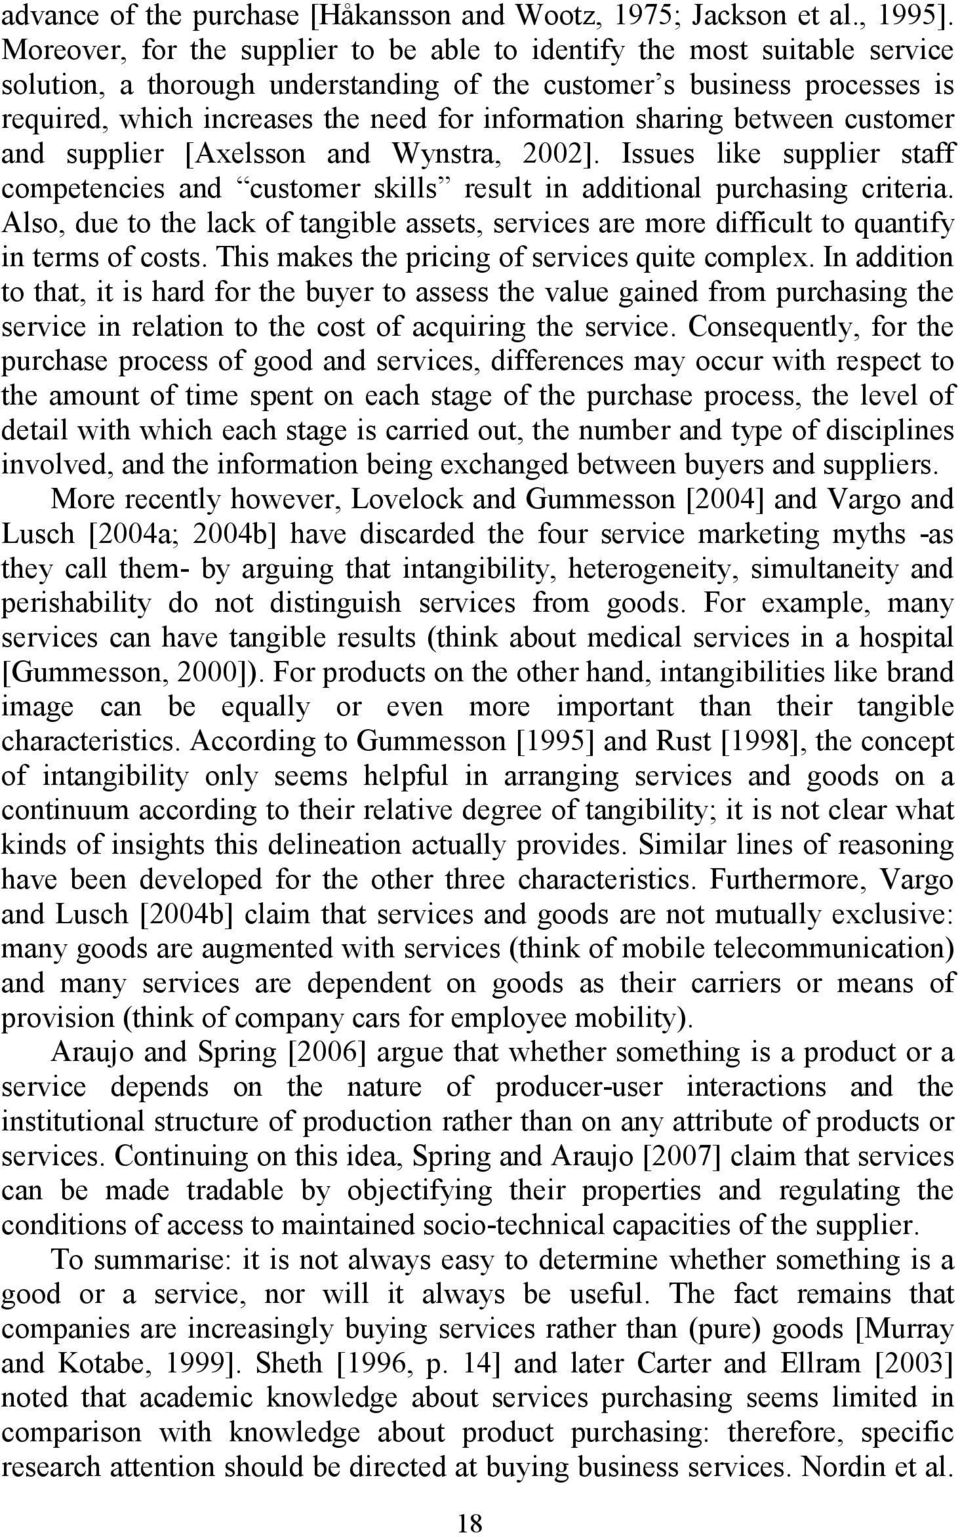 information sharing between customer and supplier [Axelsson and Wynstra, 2002]. Issues like supplier staff competencies and customer skills result in additional purchasing criteria.